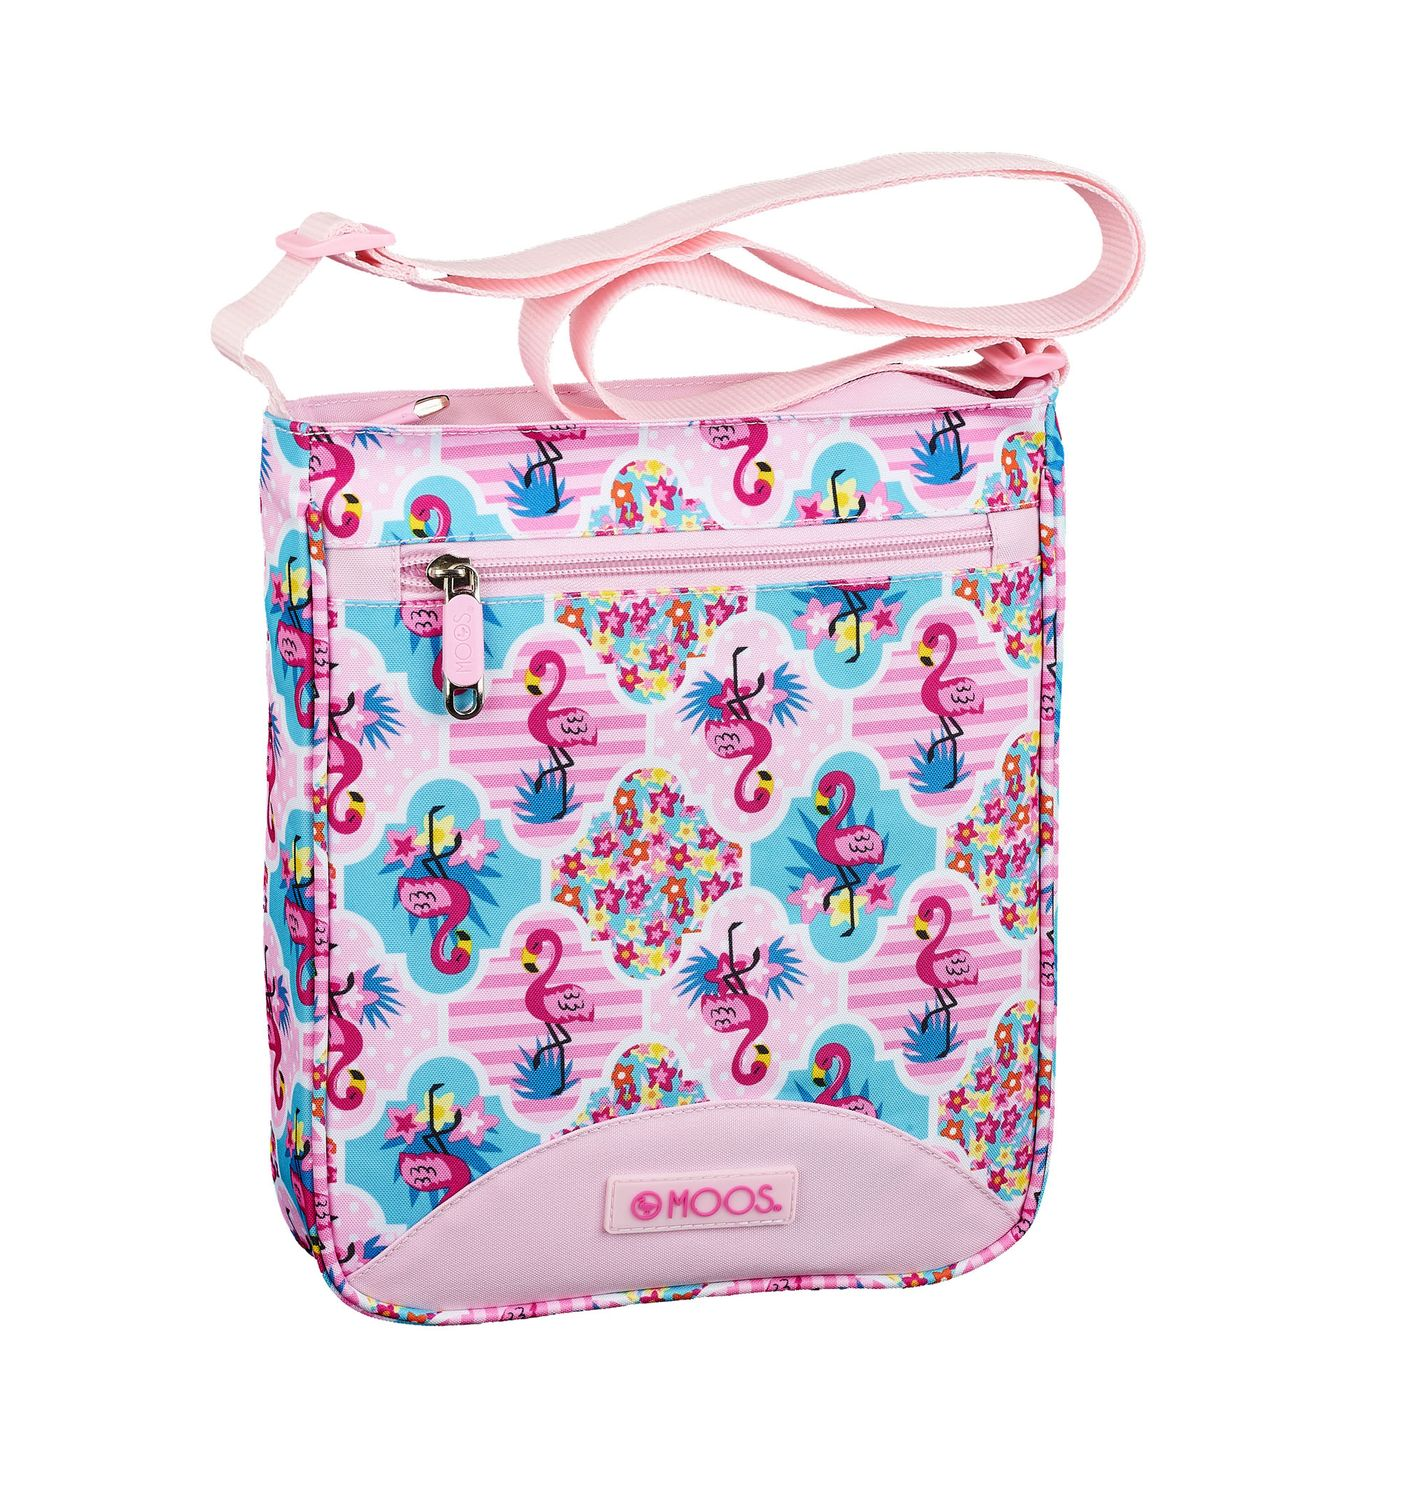 Shoulder Bag 21 cm MOOS Pink Flamingo  – image 1